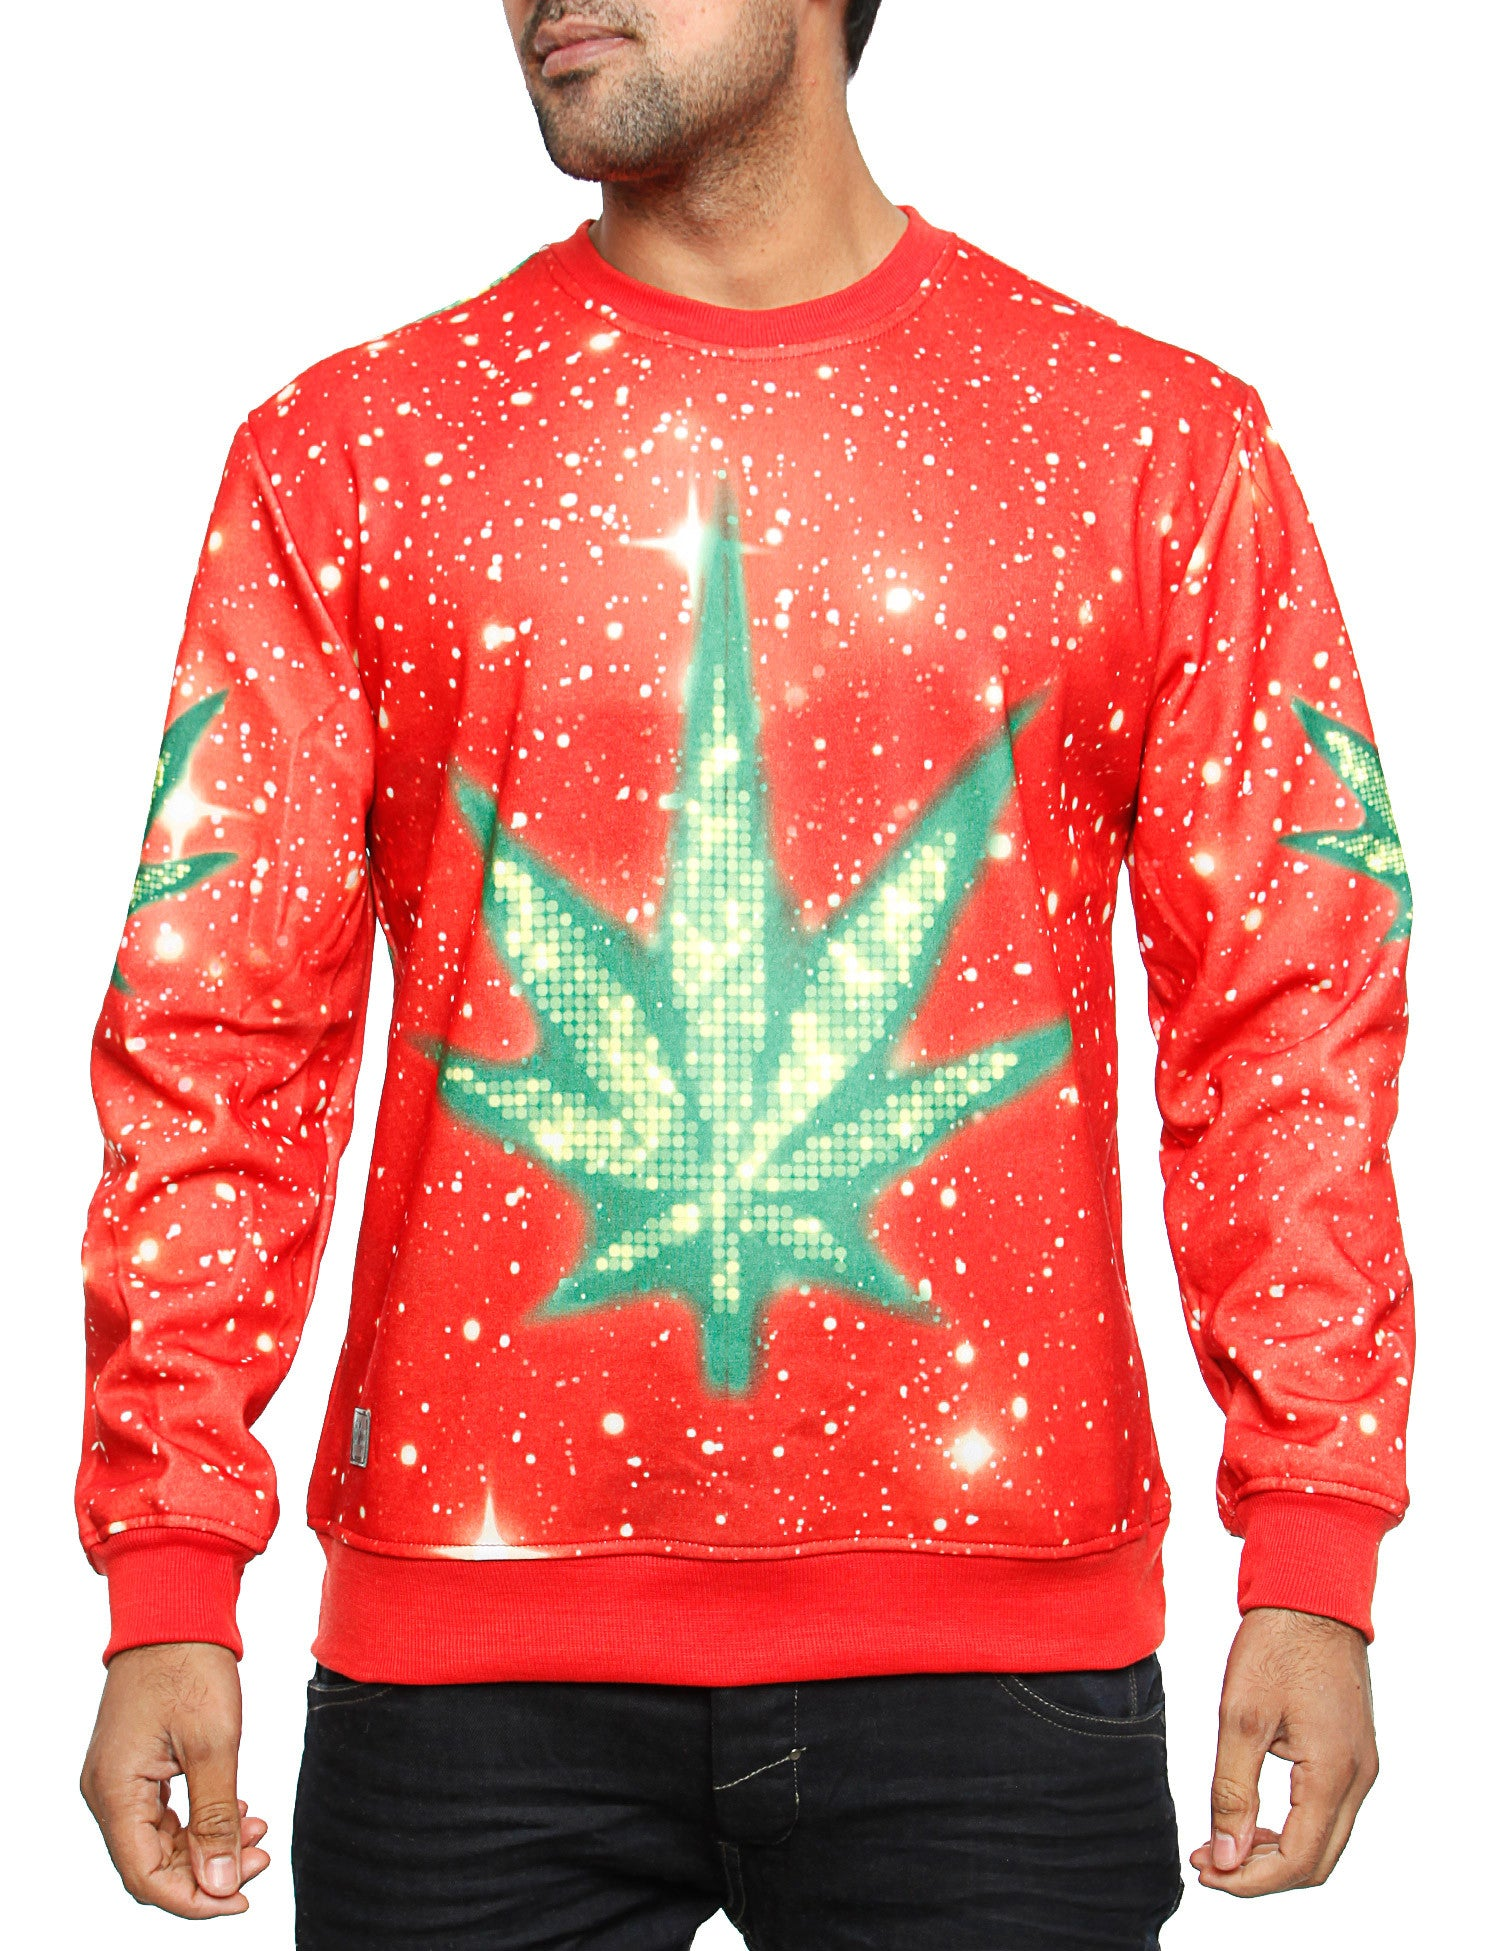 Imperious ?Marijuana? Galaxy Sweatshirt CS563 Red